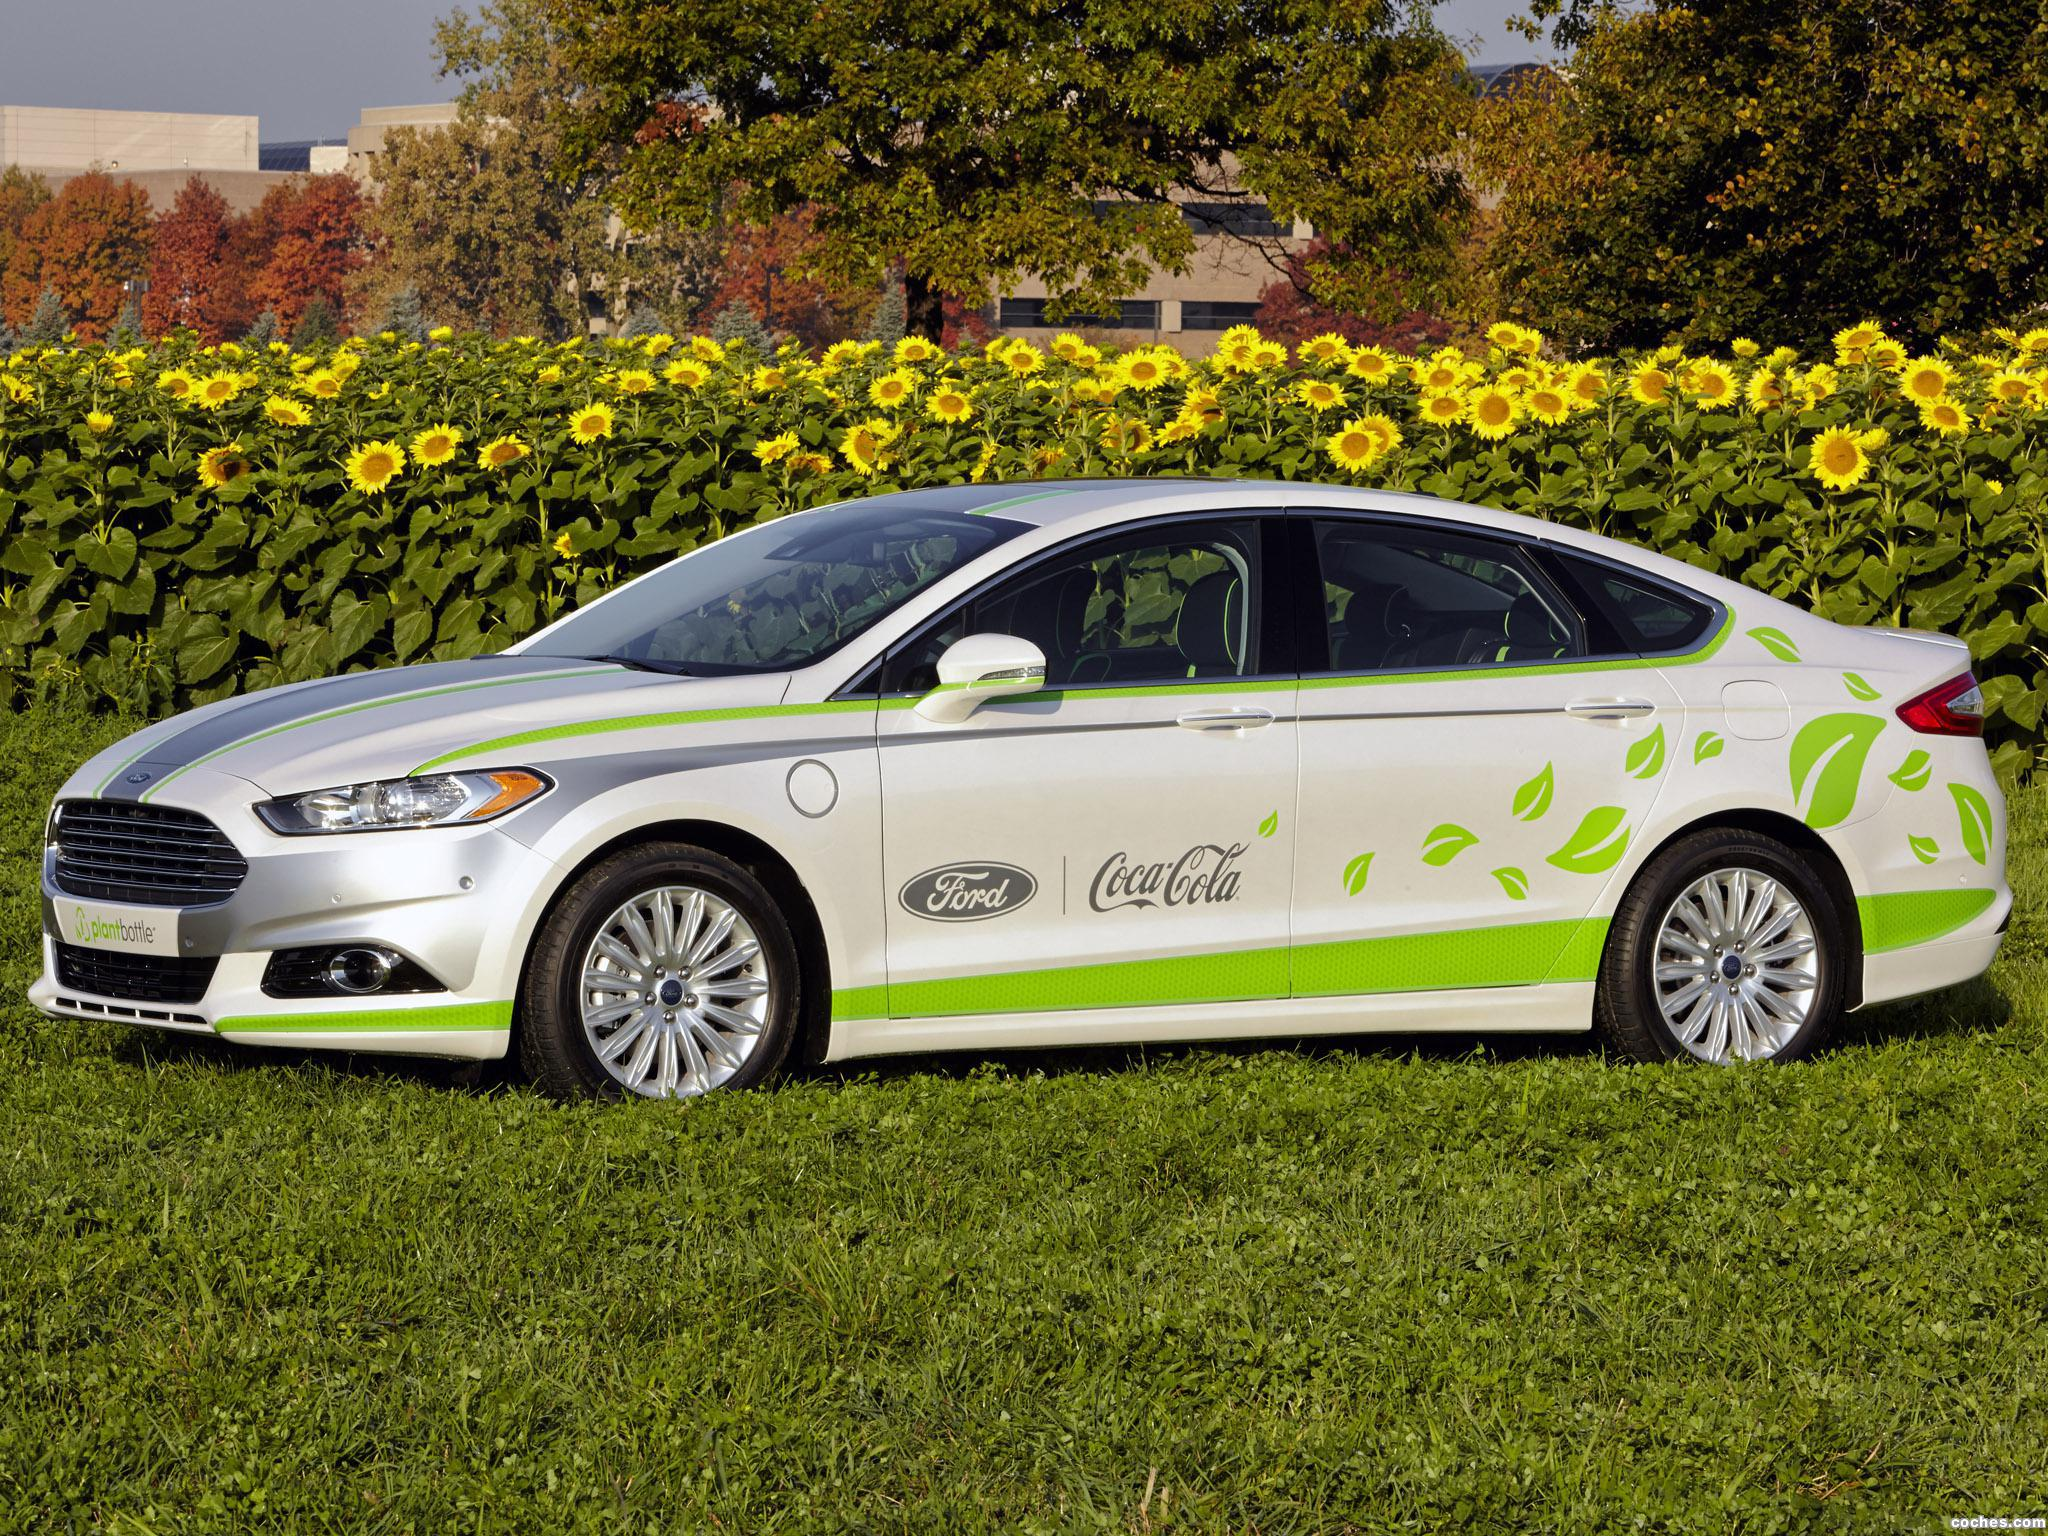 Foto 0 de Ford Fusion Energi Coca Cola Plantbottle Research Vehic 2013